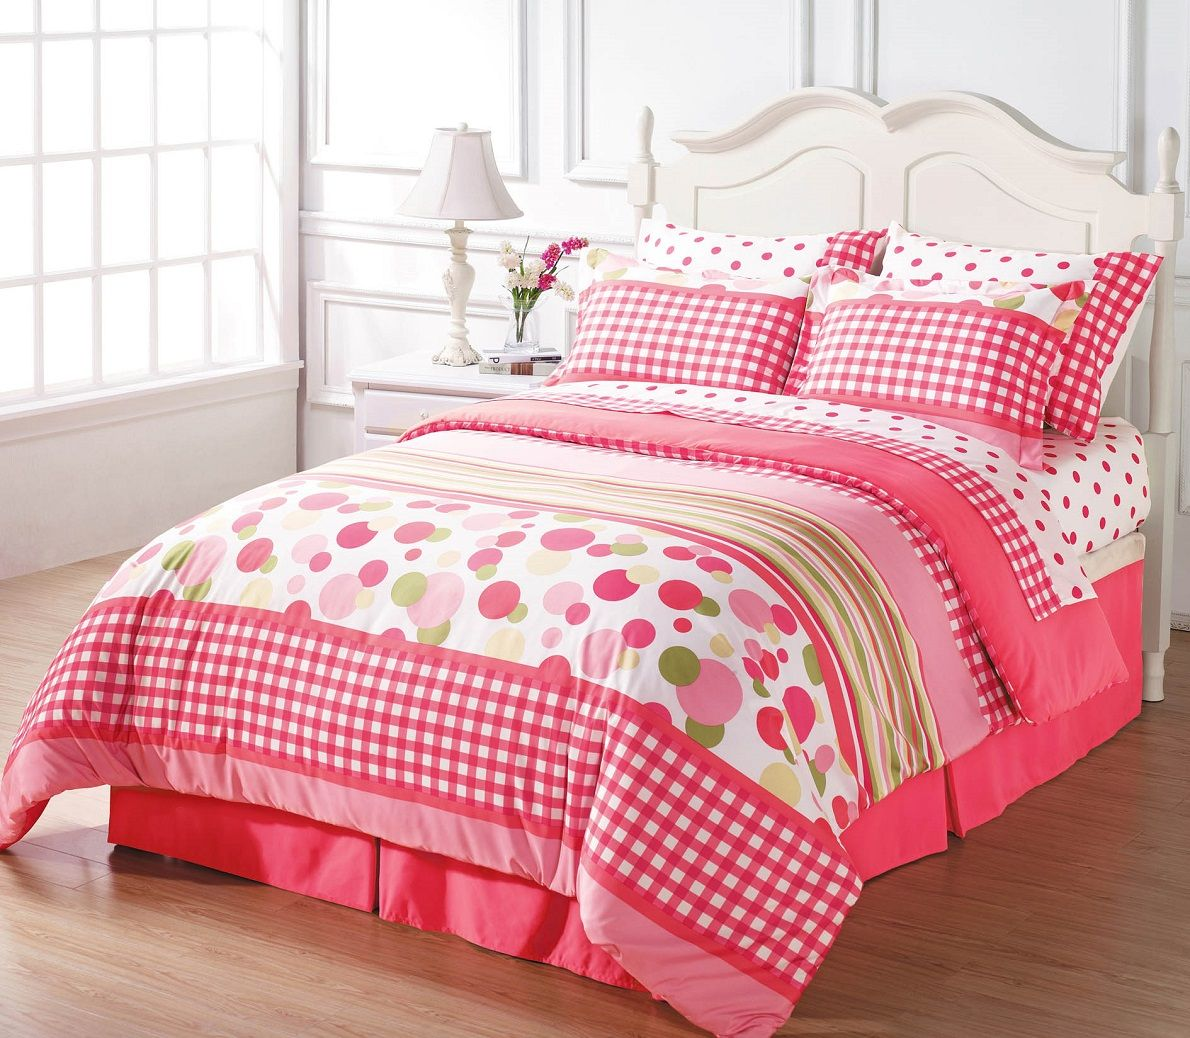 How to Find Best Girls Full Size Bedding Sets - http ...